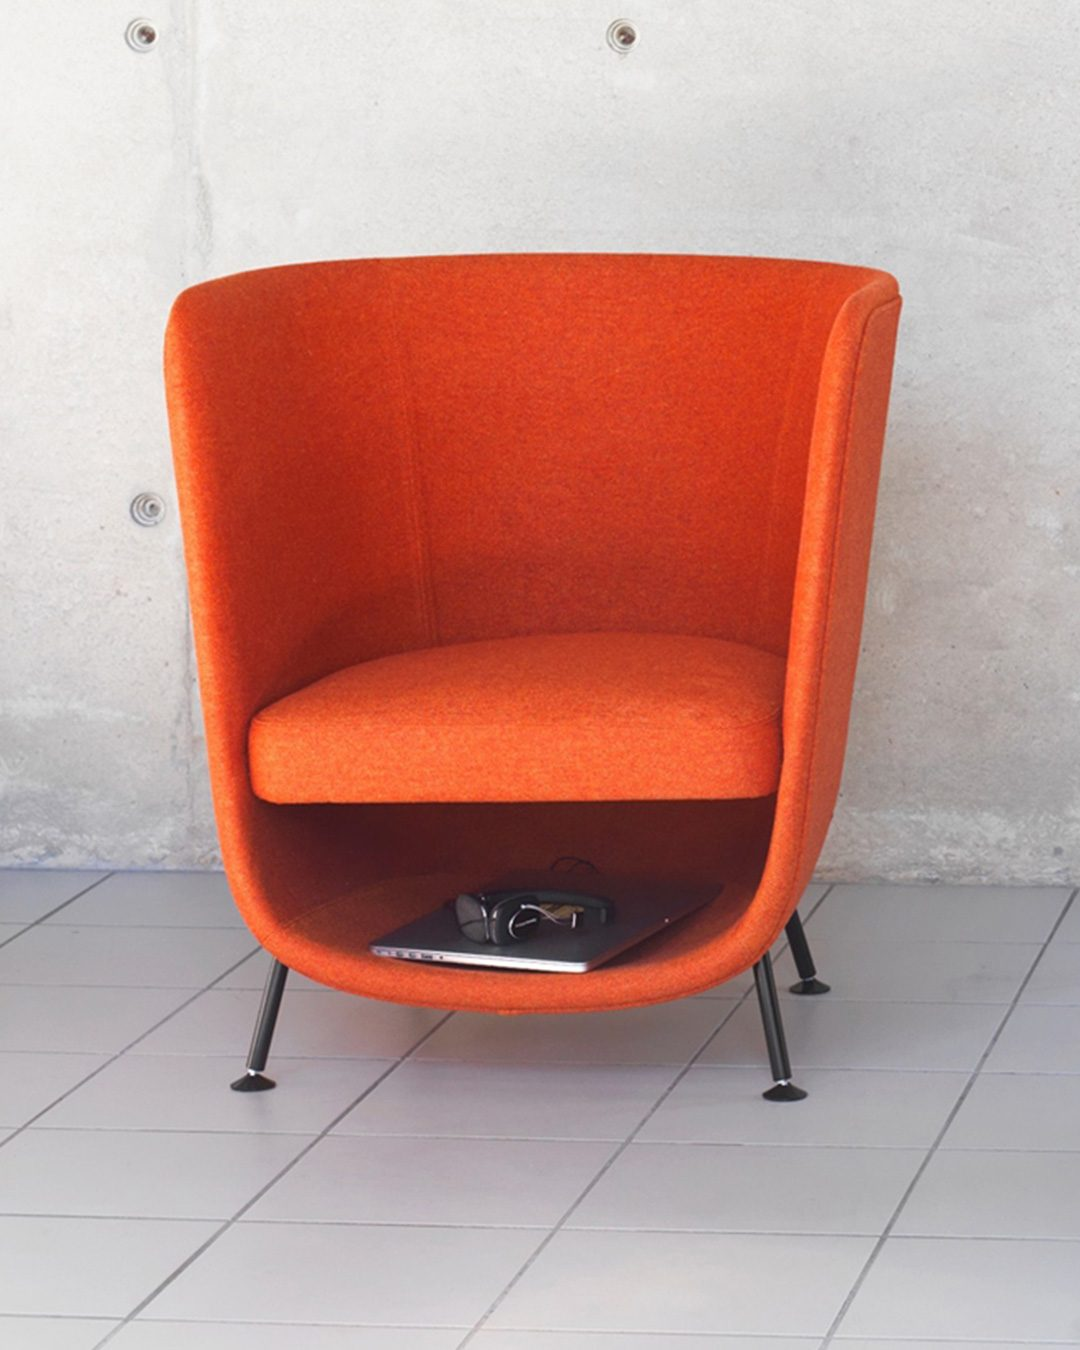 Pocket chair in orange, design furniture for cats and humans with place to cocoon